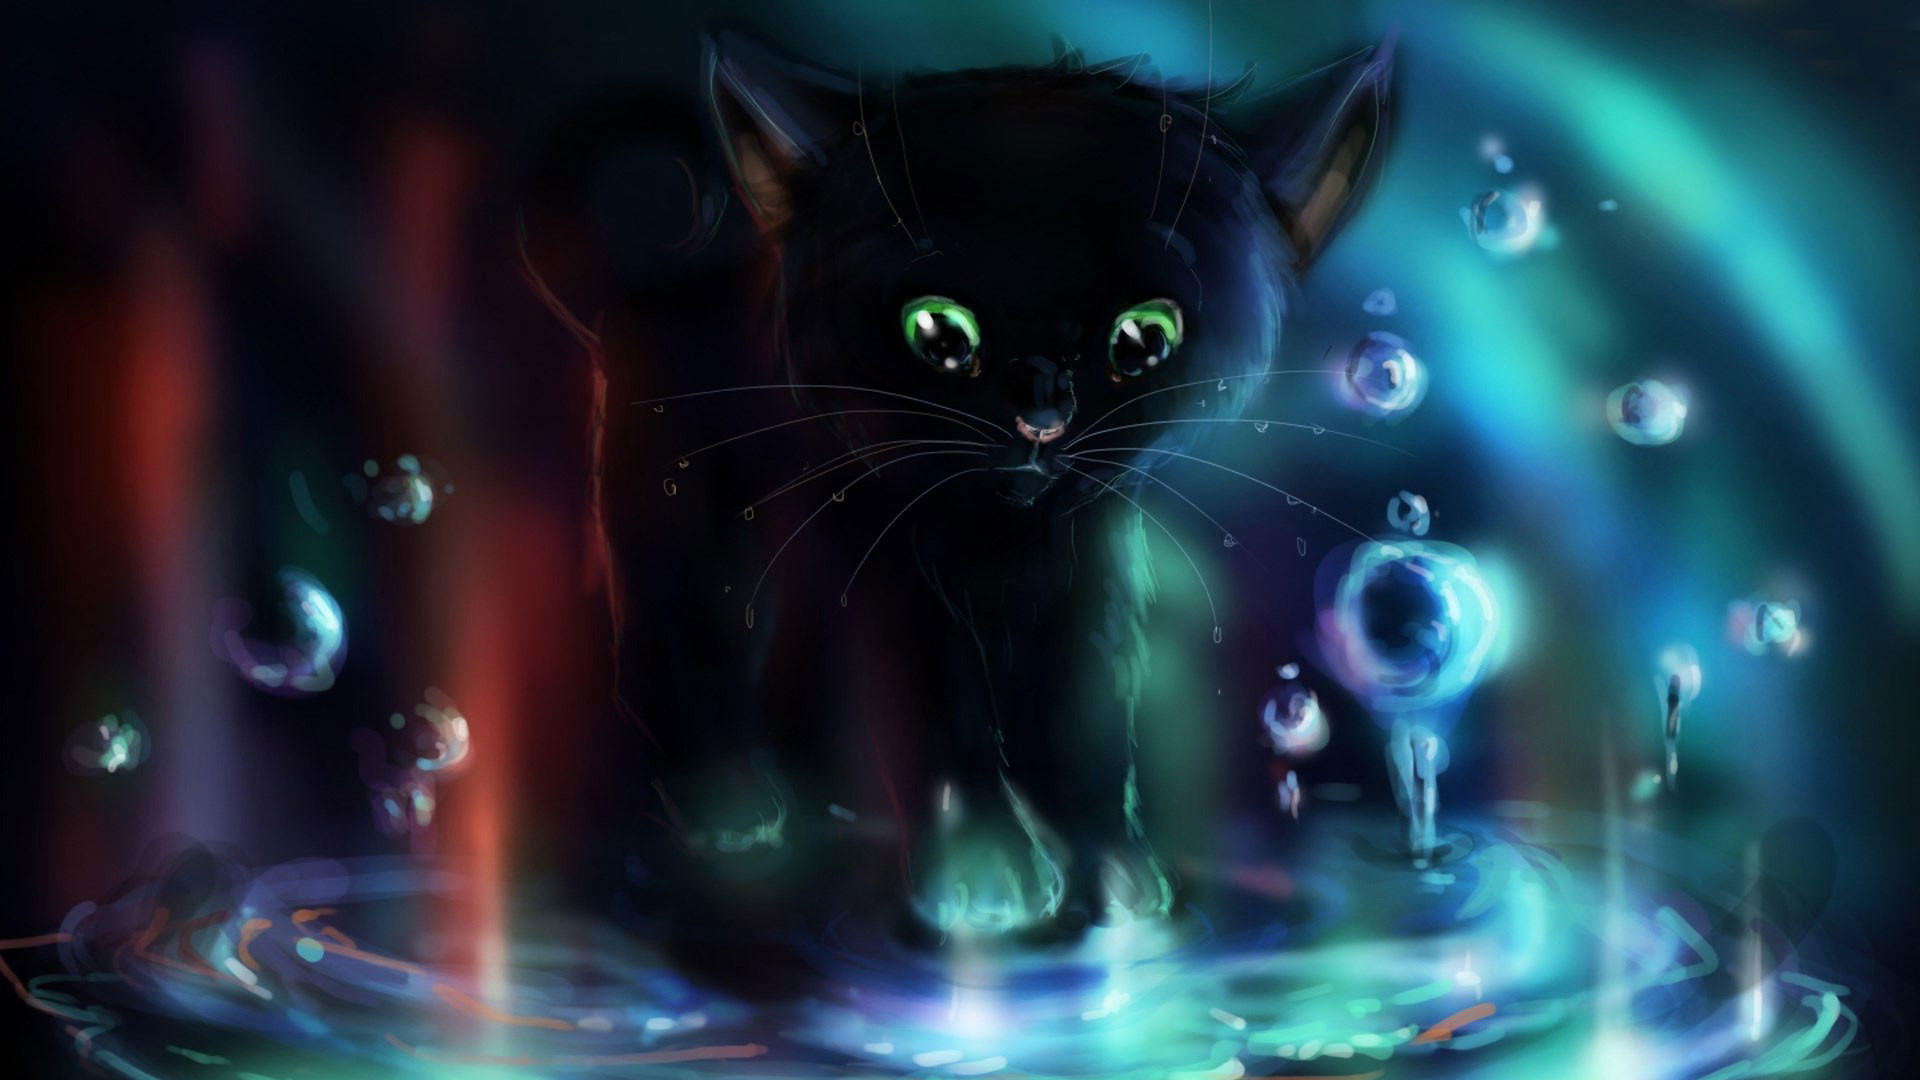 1920x1080 hd pics photos attractive black cat water 2d animated cartoon hd quality  desktop background wallpaper